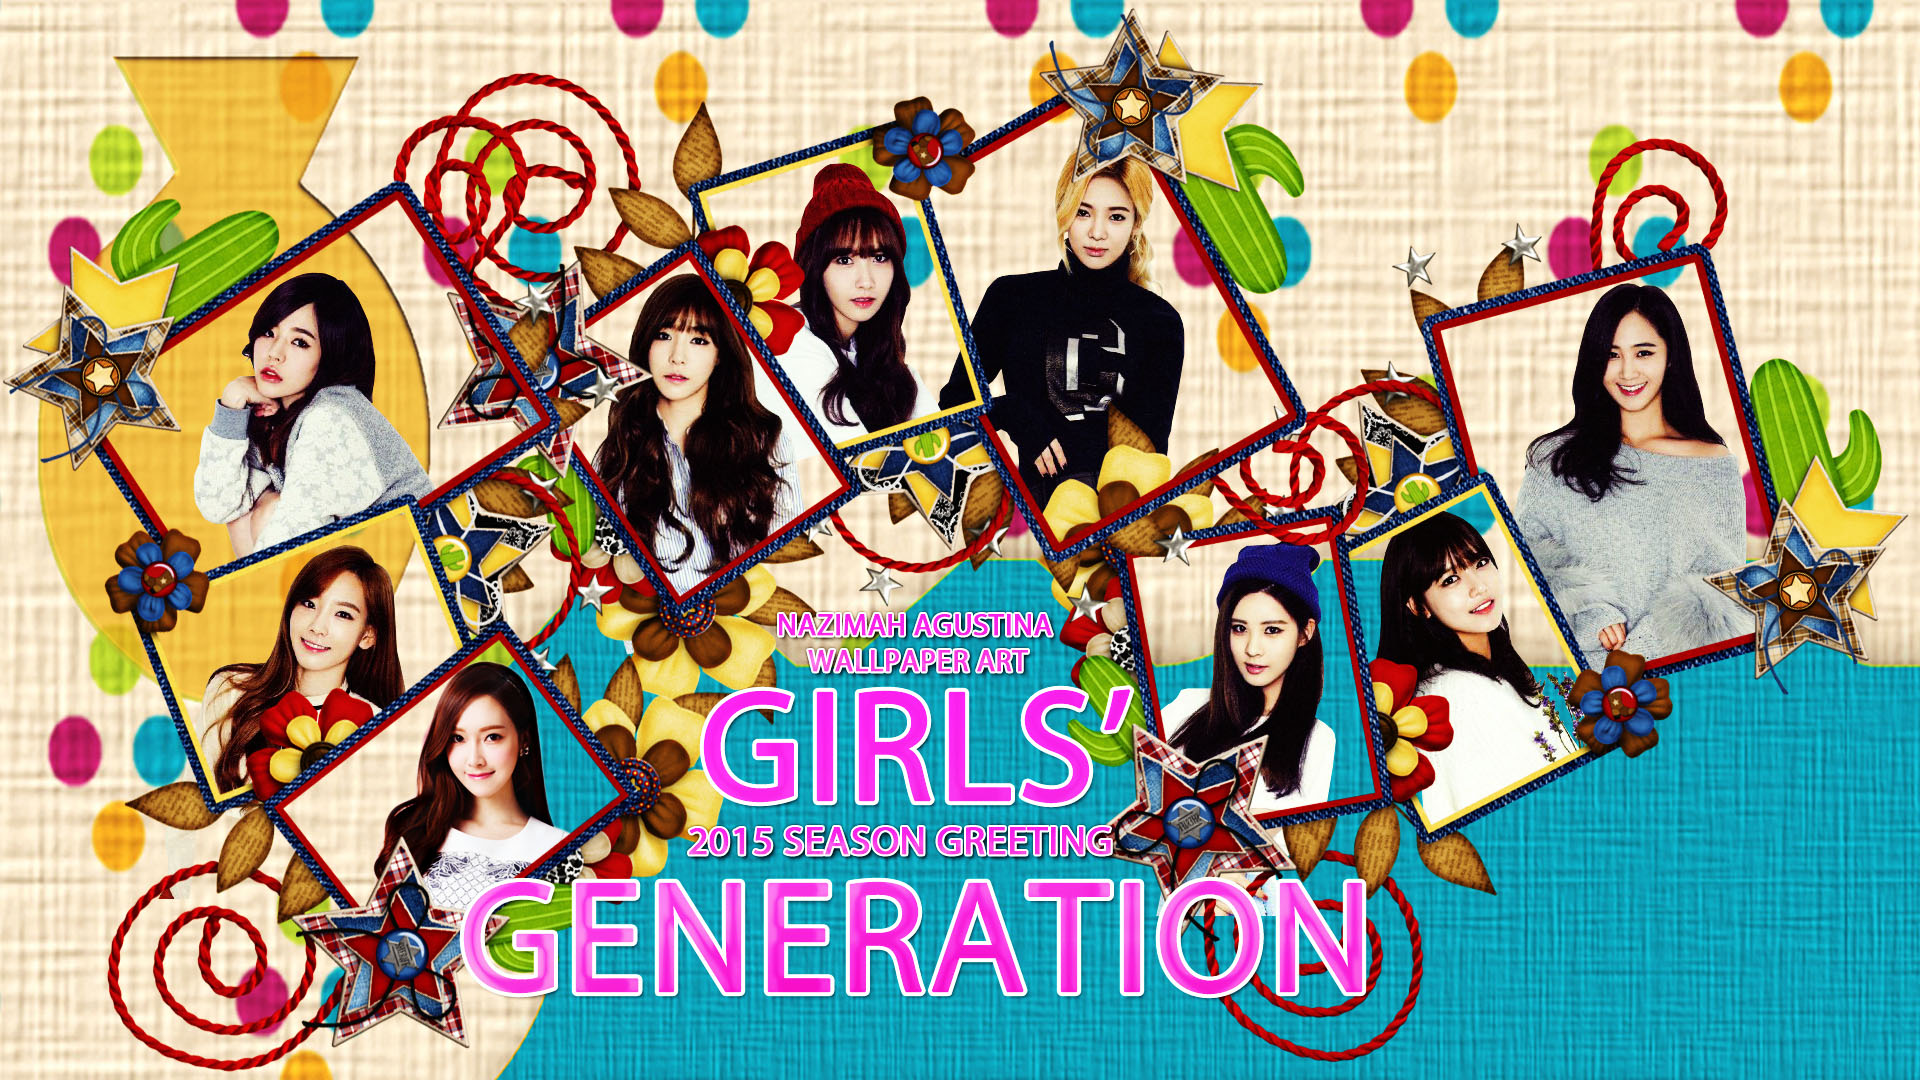 Girls Wallpapers 2015: [Edit Stock] Girls' Generation On 2015 Season Greeting